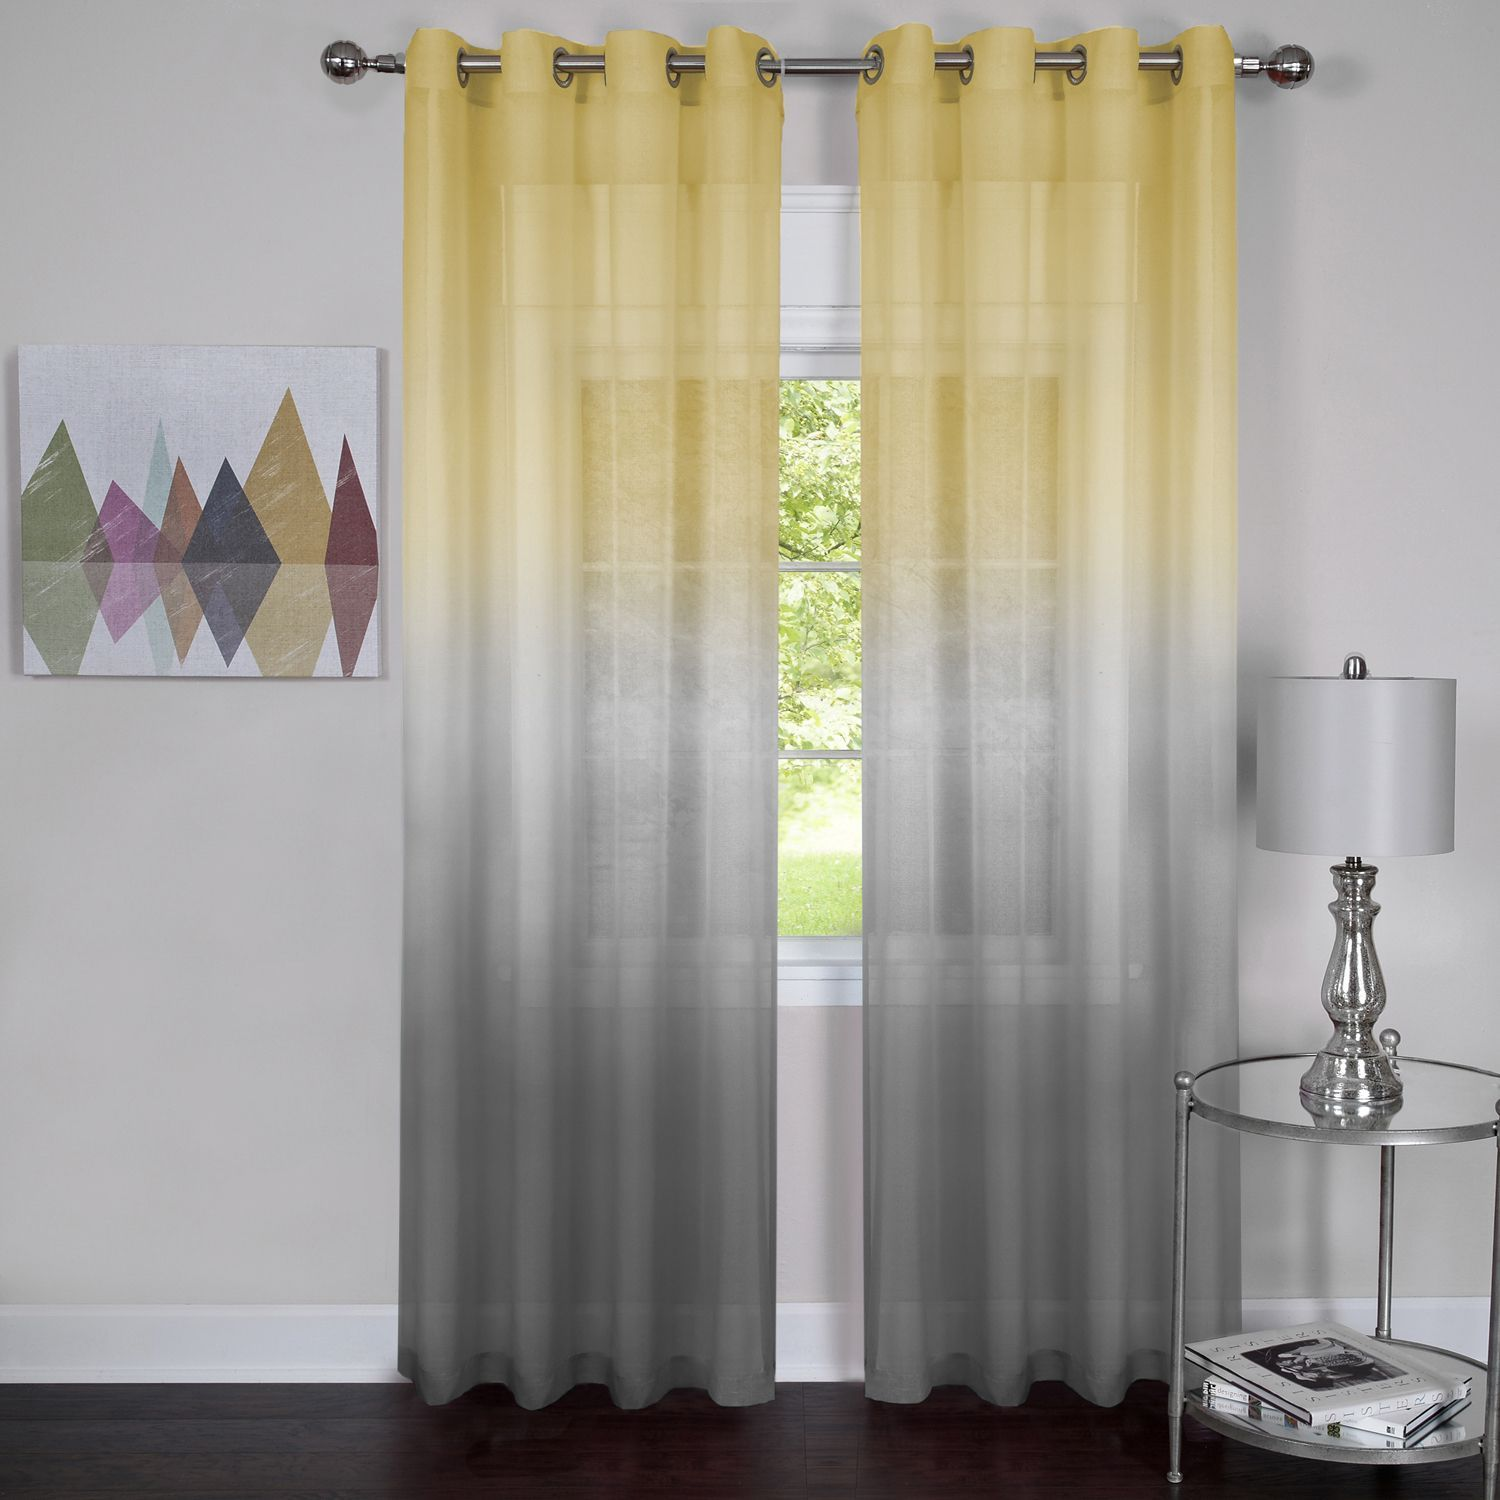 ACHIM Semi Sheer Ombre Grommet Curtain Panel 52x84